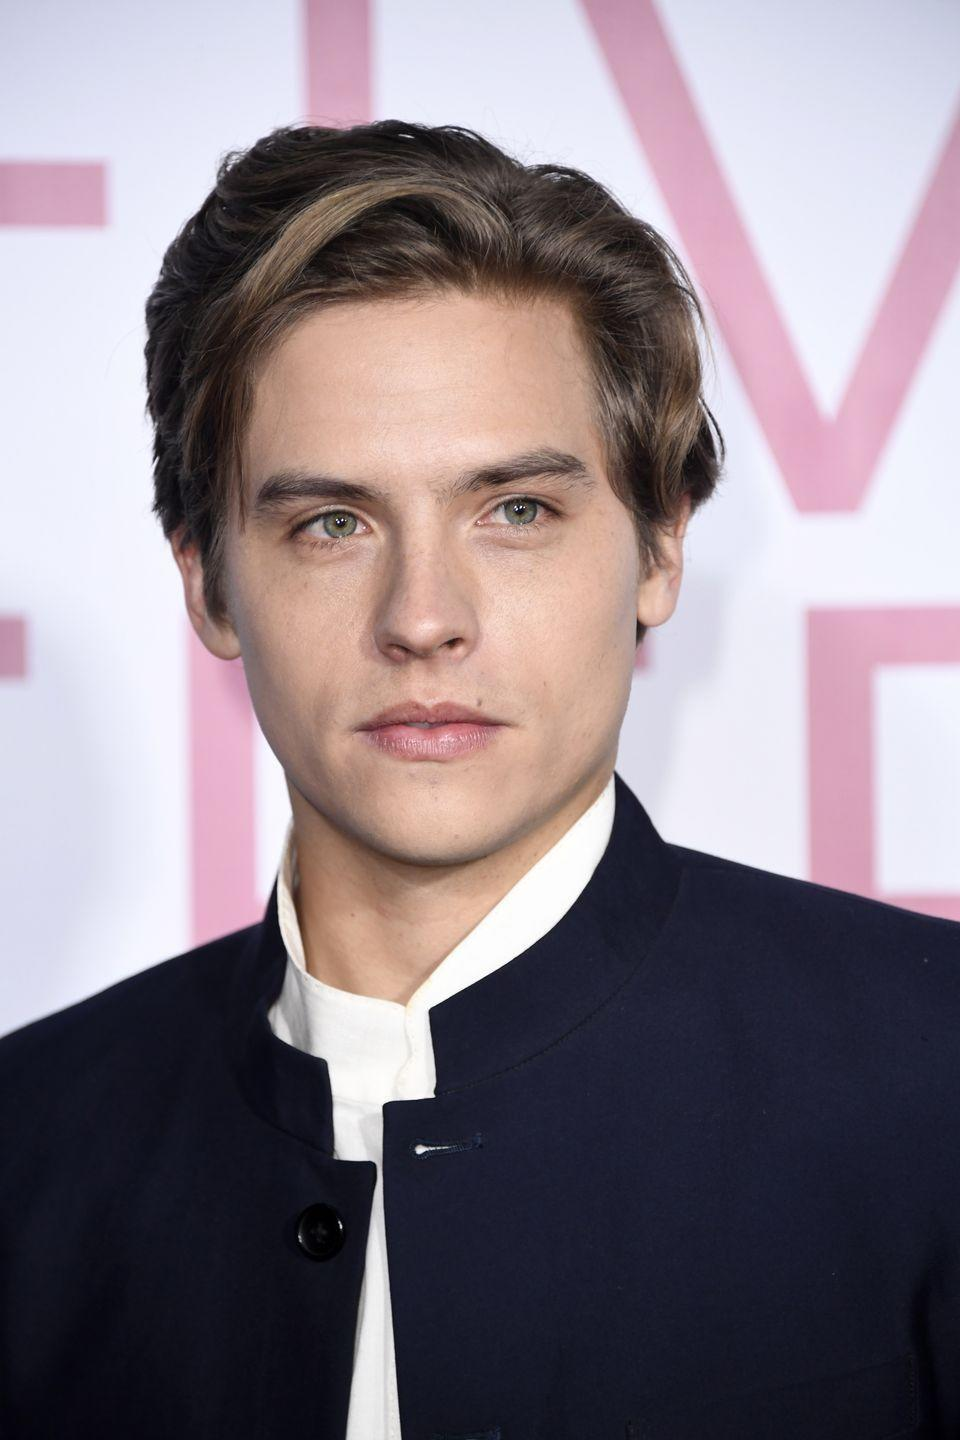 """<p>A brief Disney Channel romance that somehow went under the radar: Cyrus reportedly dated The <em>Suite Life of Zack & Cody</em> star Dylan Sprouse. He joked about the day-long romance on a 2008 episode of <a href=""""https://www.youtube.com/watch?v=_LwbhOCroXk"""" rel=""""nofollow noopener"""" target=""""_blank"""" data-ylk=""""slk:Jimmy Kimmel Live"""" class=""""link rapid-noclick-resp""""><em>Jimmy Kimmel Live</em></a>. """"We met at her set, I believe, and we dated. And then Nick Jonas walked by and it was over,"""" he remembered.</p>"""